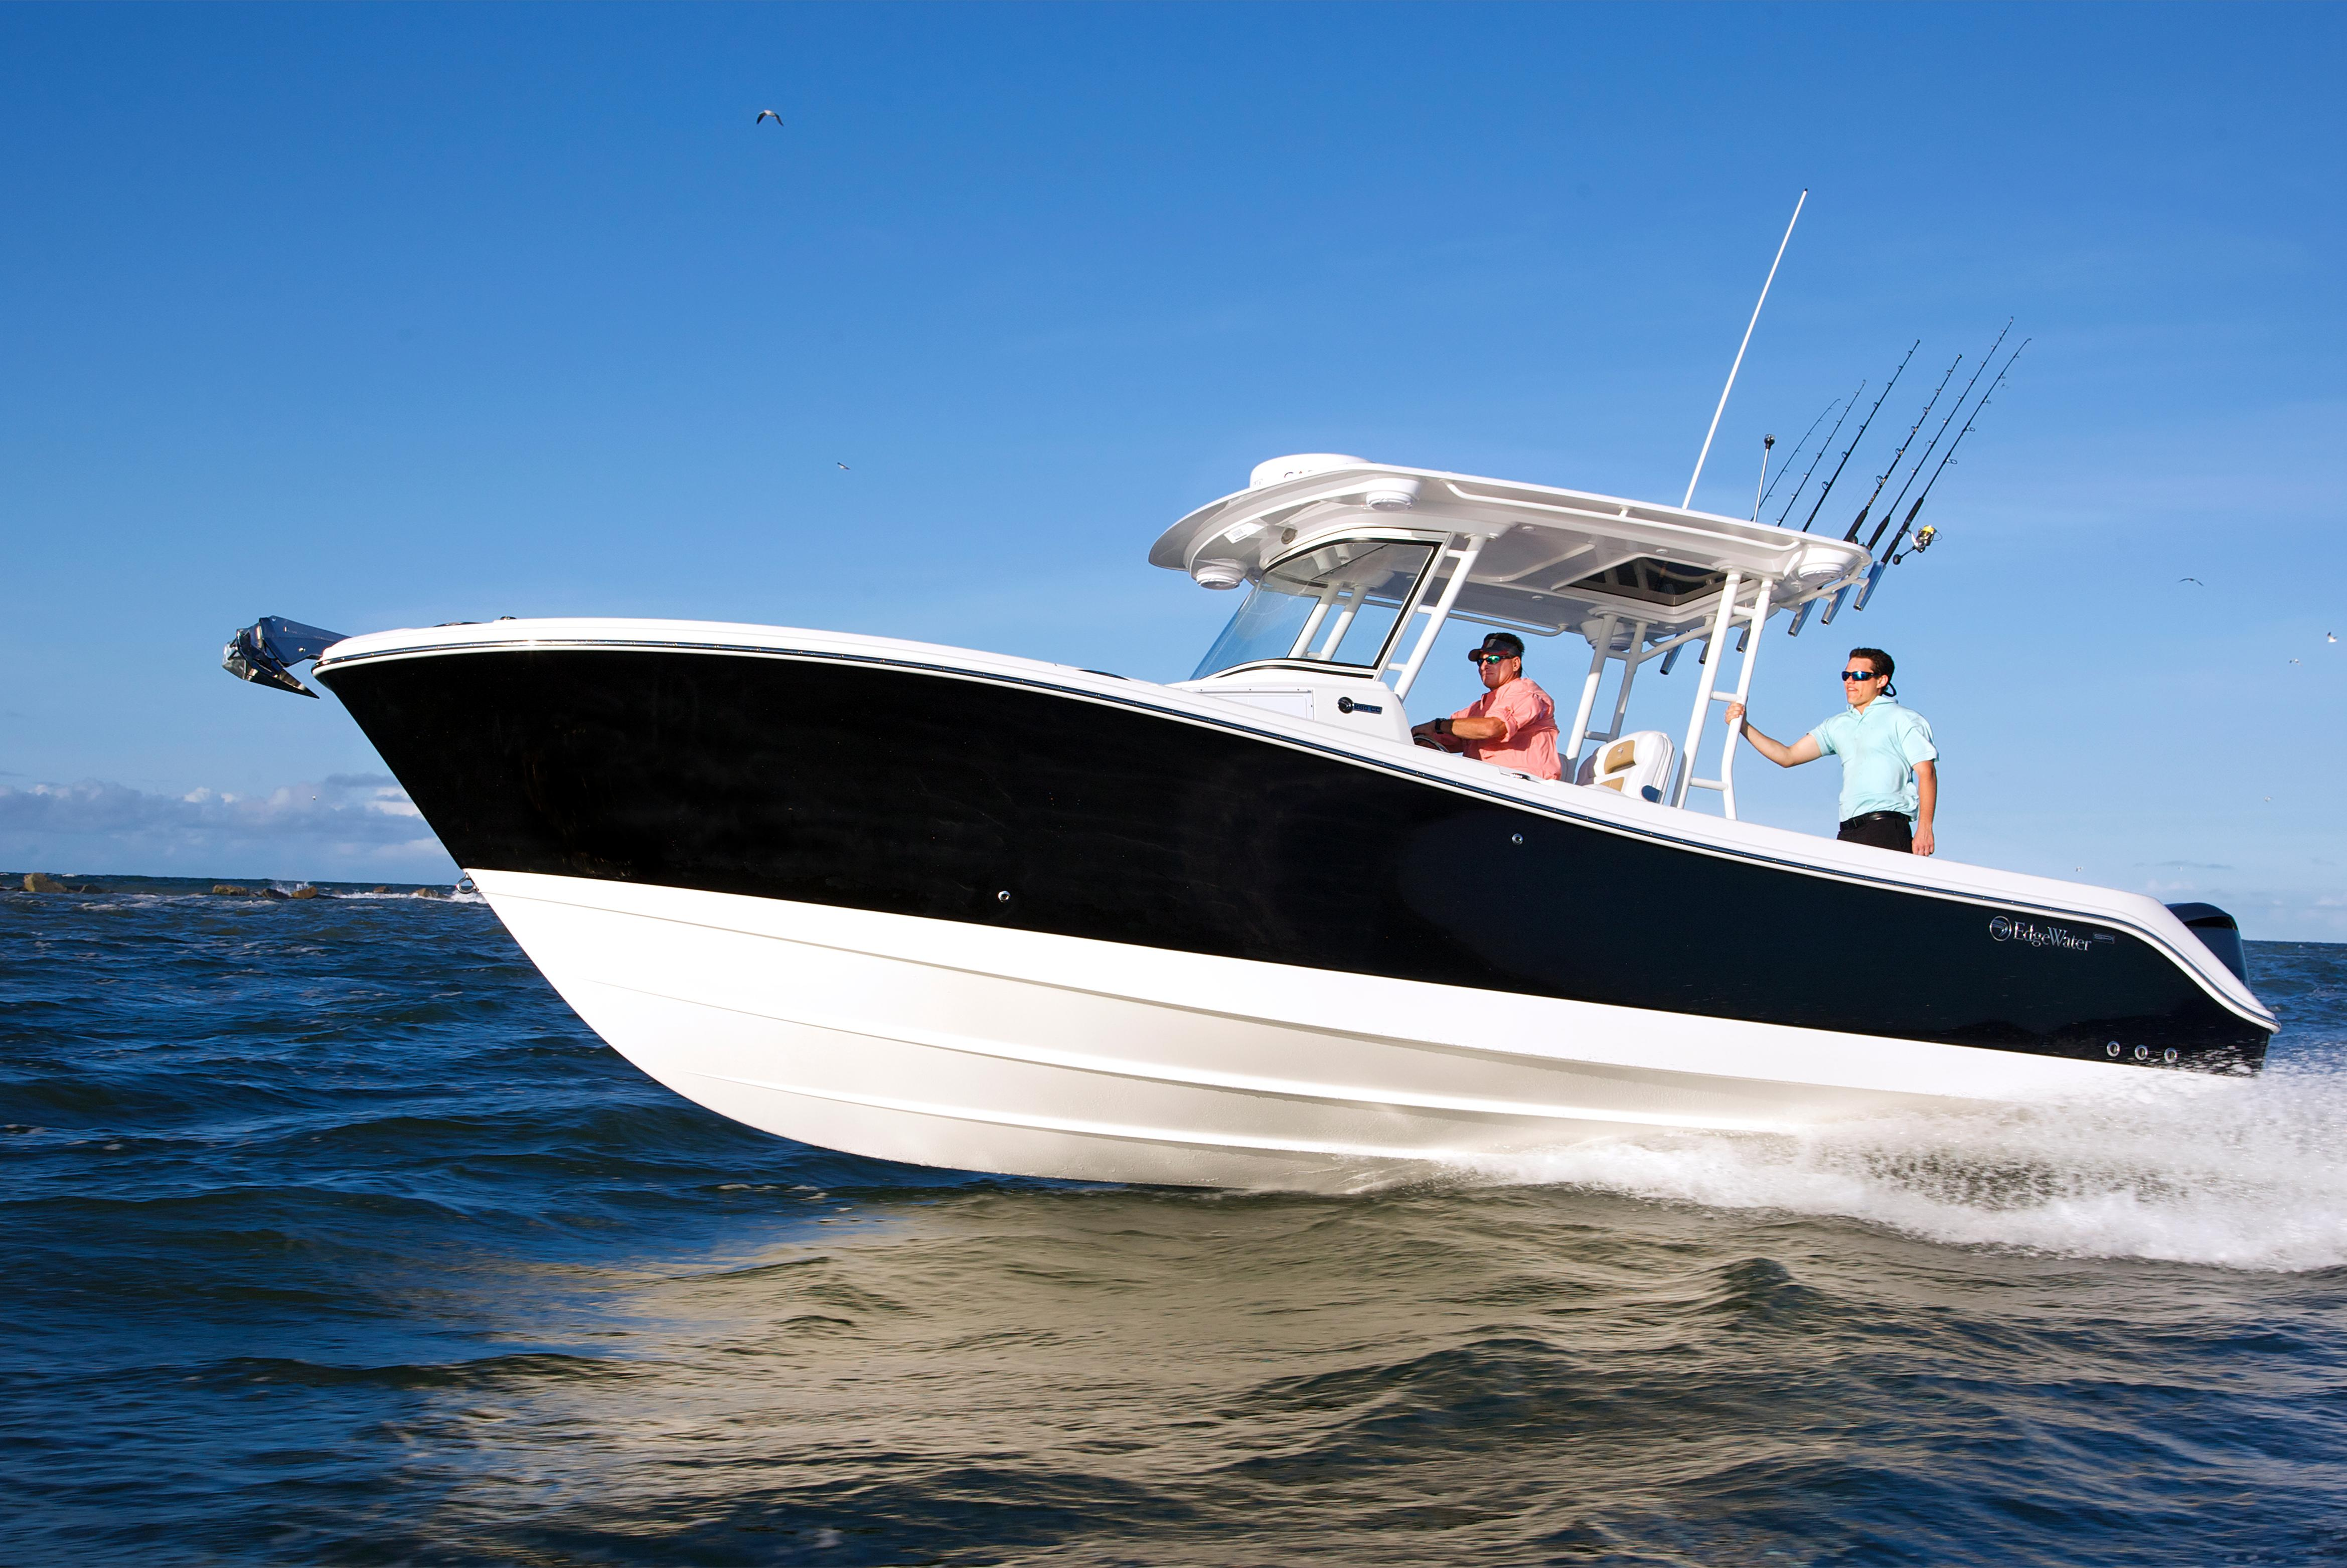 28 Foot Boats for Sale in MD   Boat listings